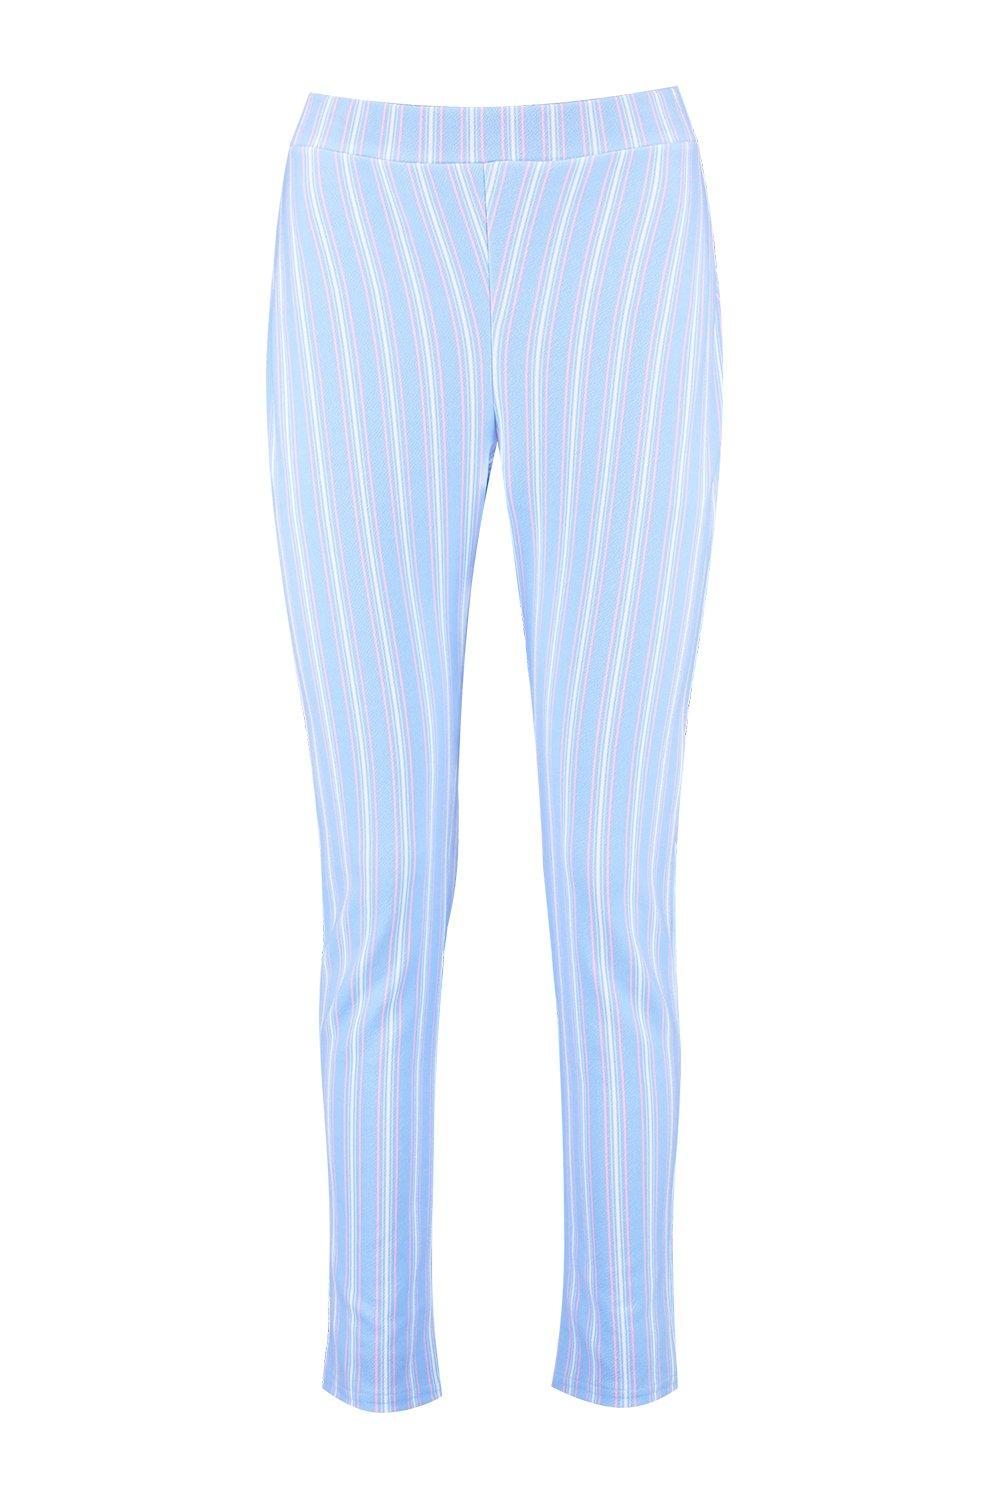 Stripe Stripe blue Tapered Tapered Trouser blue Stripe Trouser Tapered Tapered blue Trouser Trouser Stripe wWvqFZTC